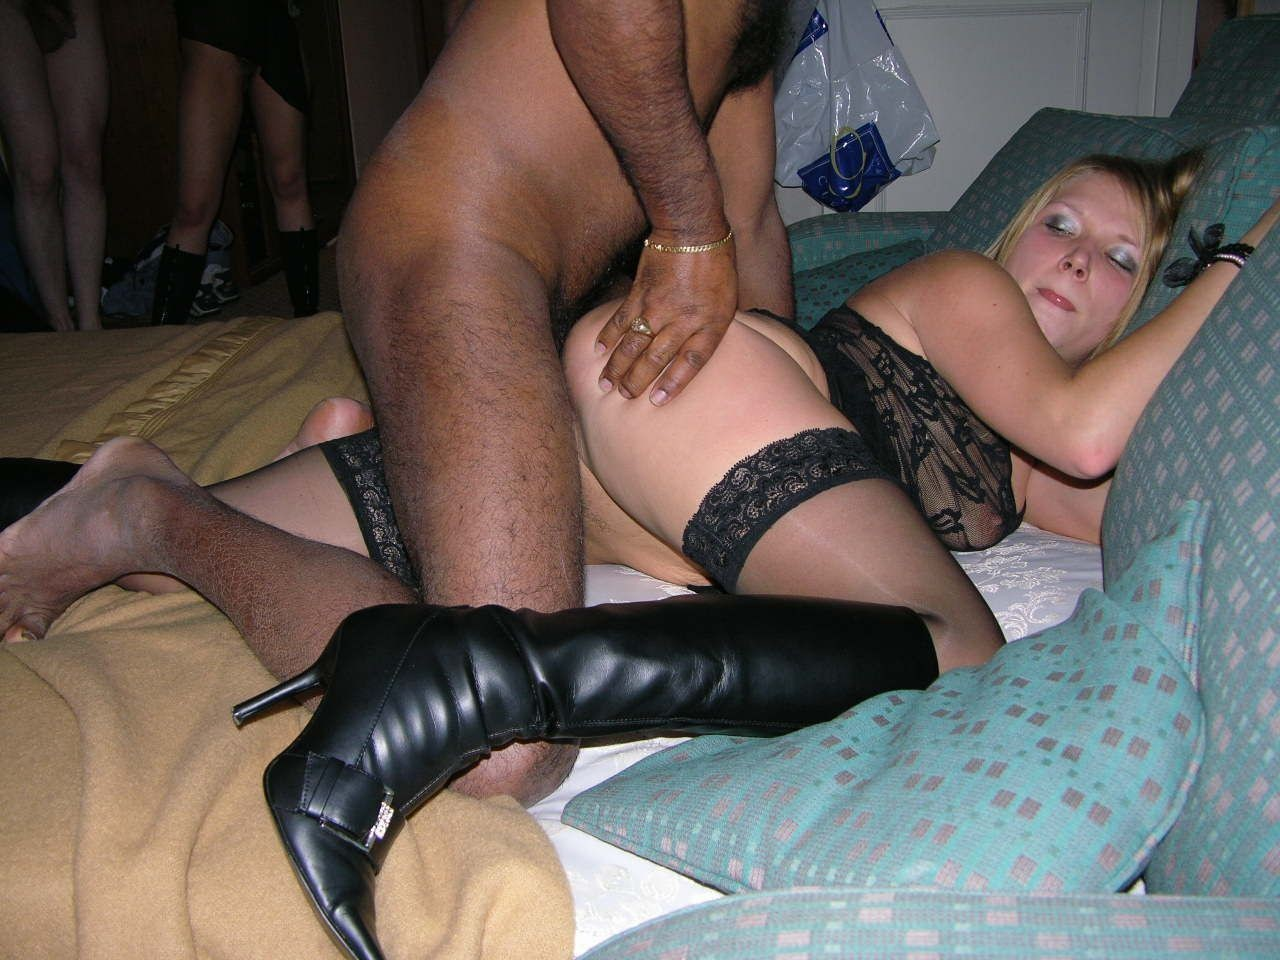 Whore wife jumps on bbc instantly if left alone